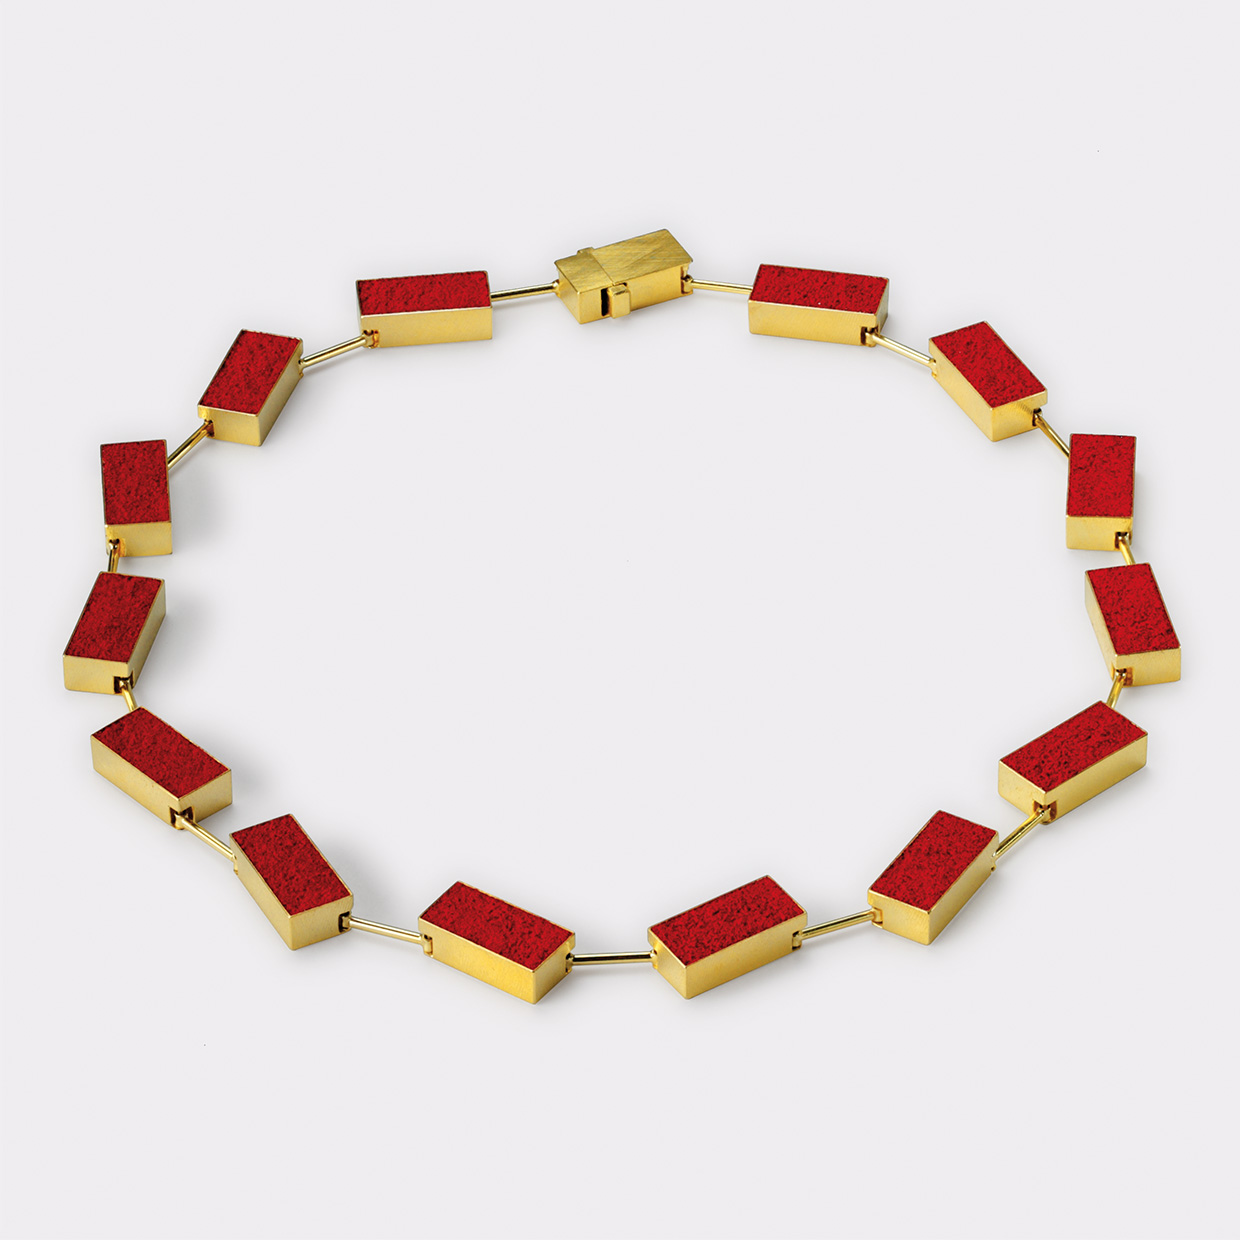 necklace  2011  gold  750  red  pigment  480x10  mm